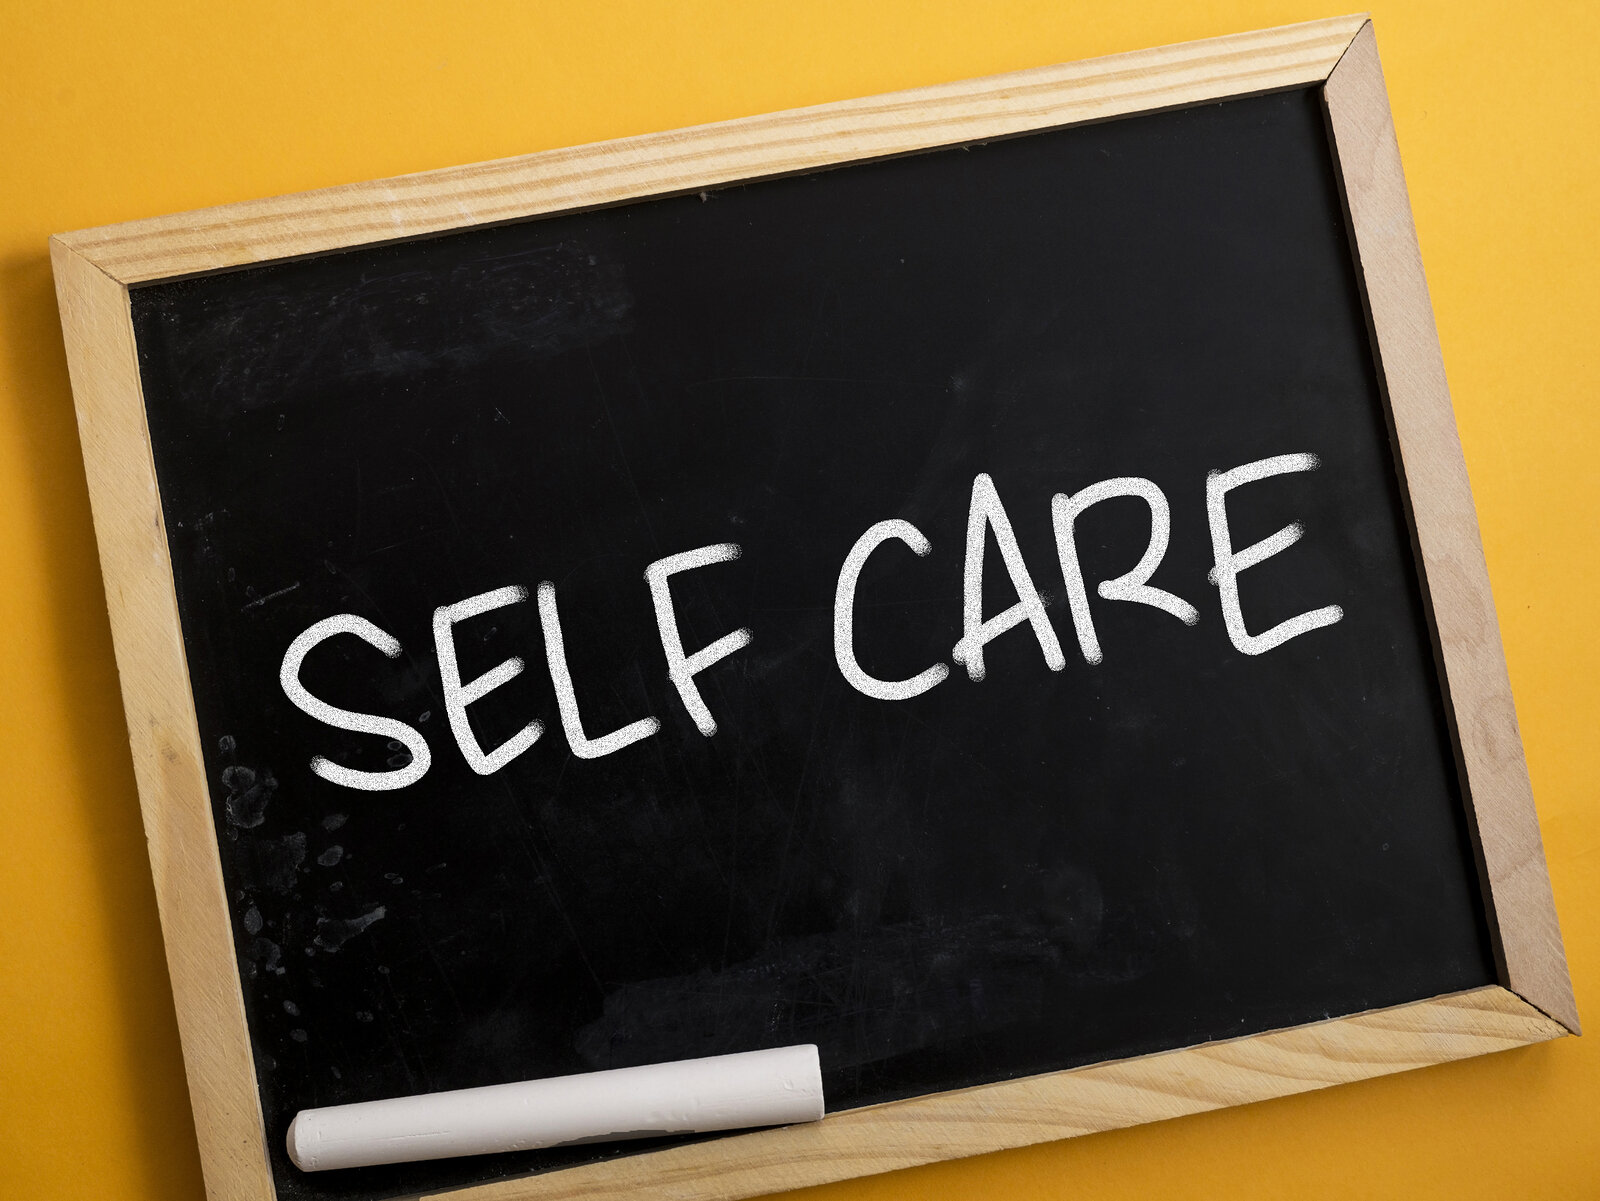 """Wooden framed chalkboard and chalk image with """"Self Care"""" written on the blackboard, for counseling and therapy"""